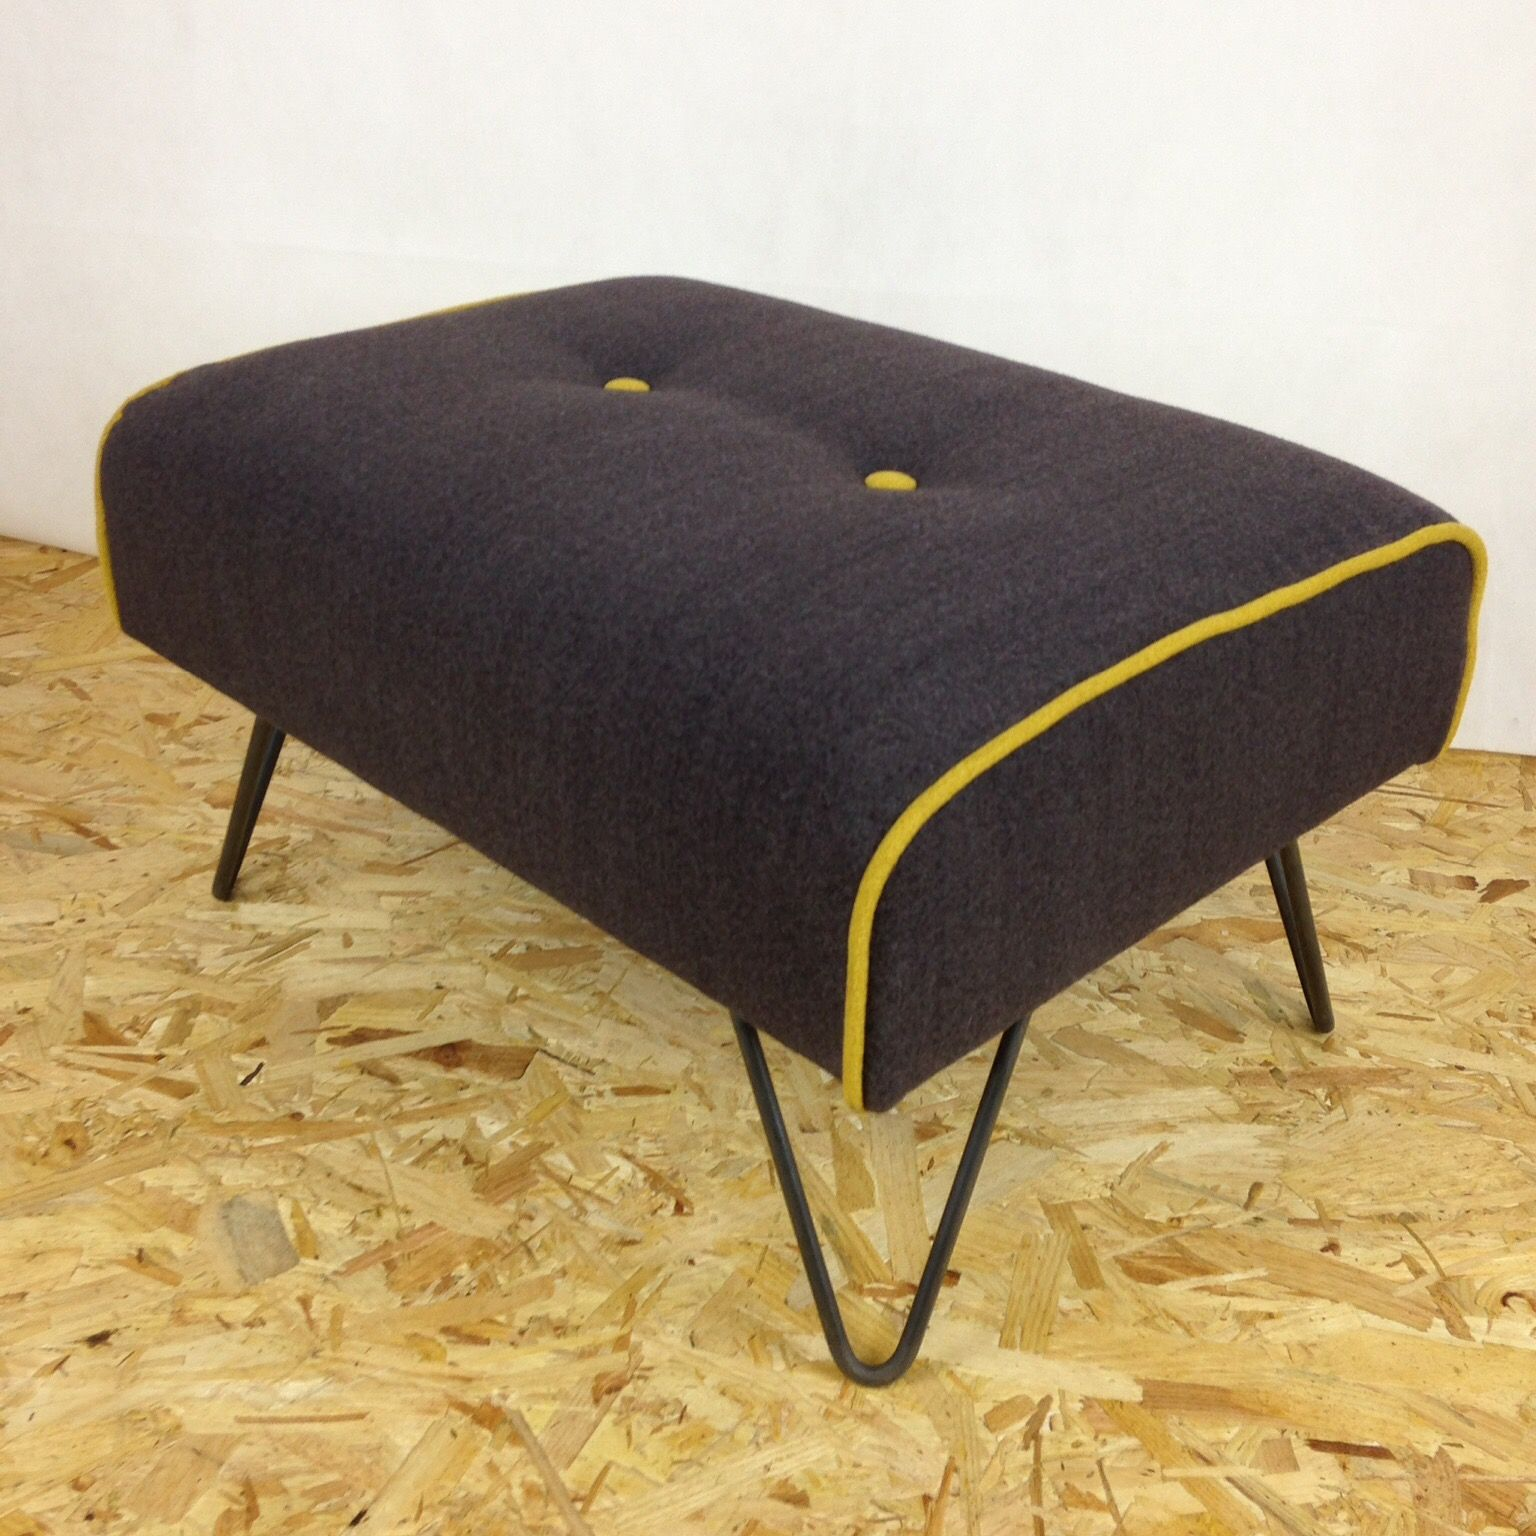 Handmade Footstool Upholstered In Grey Wool Fabric With Yellow